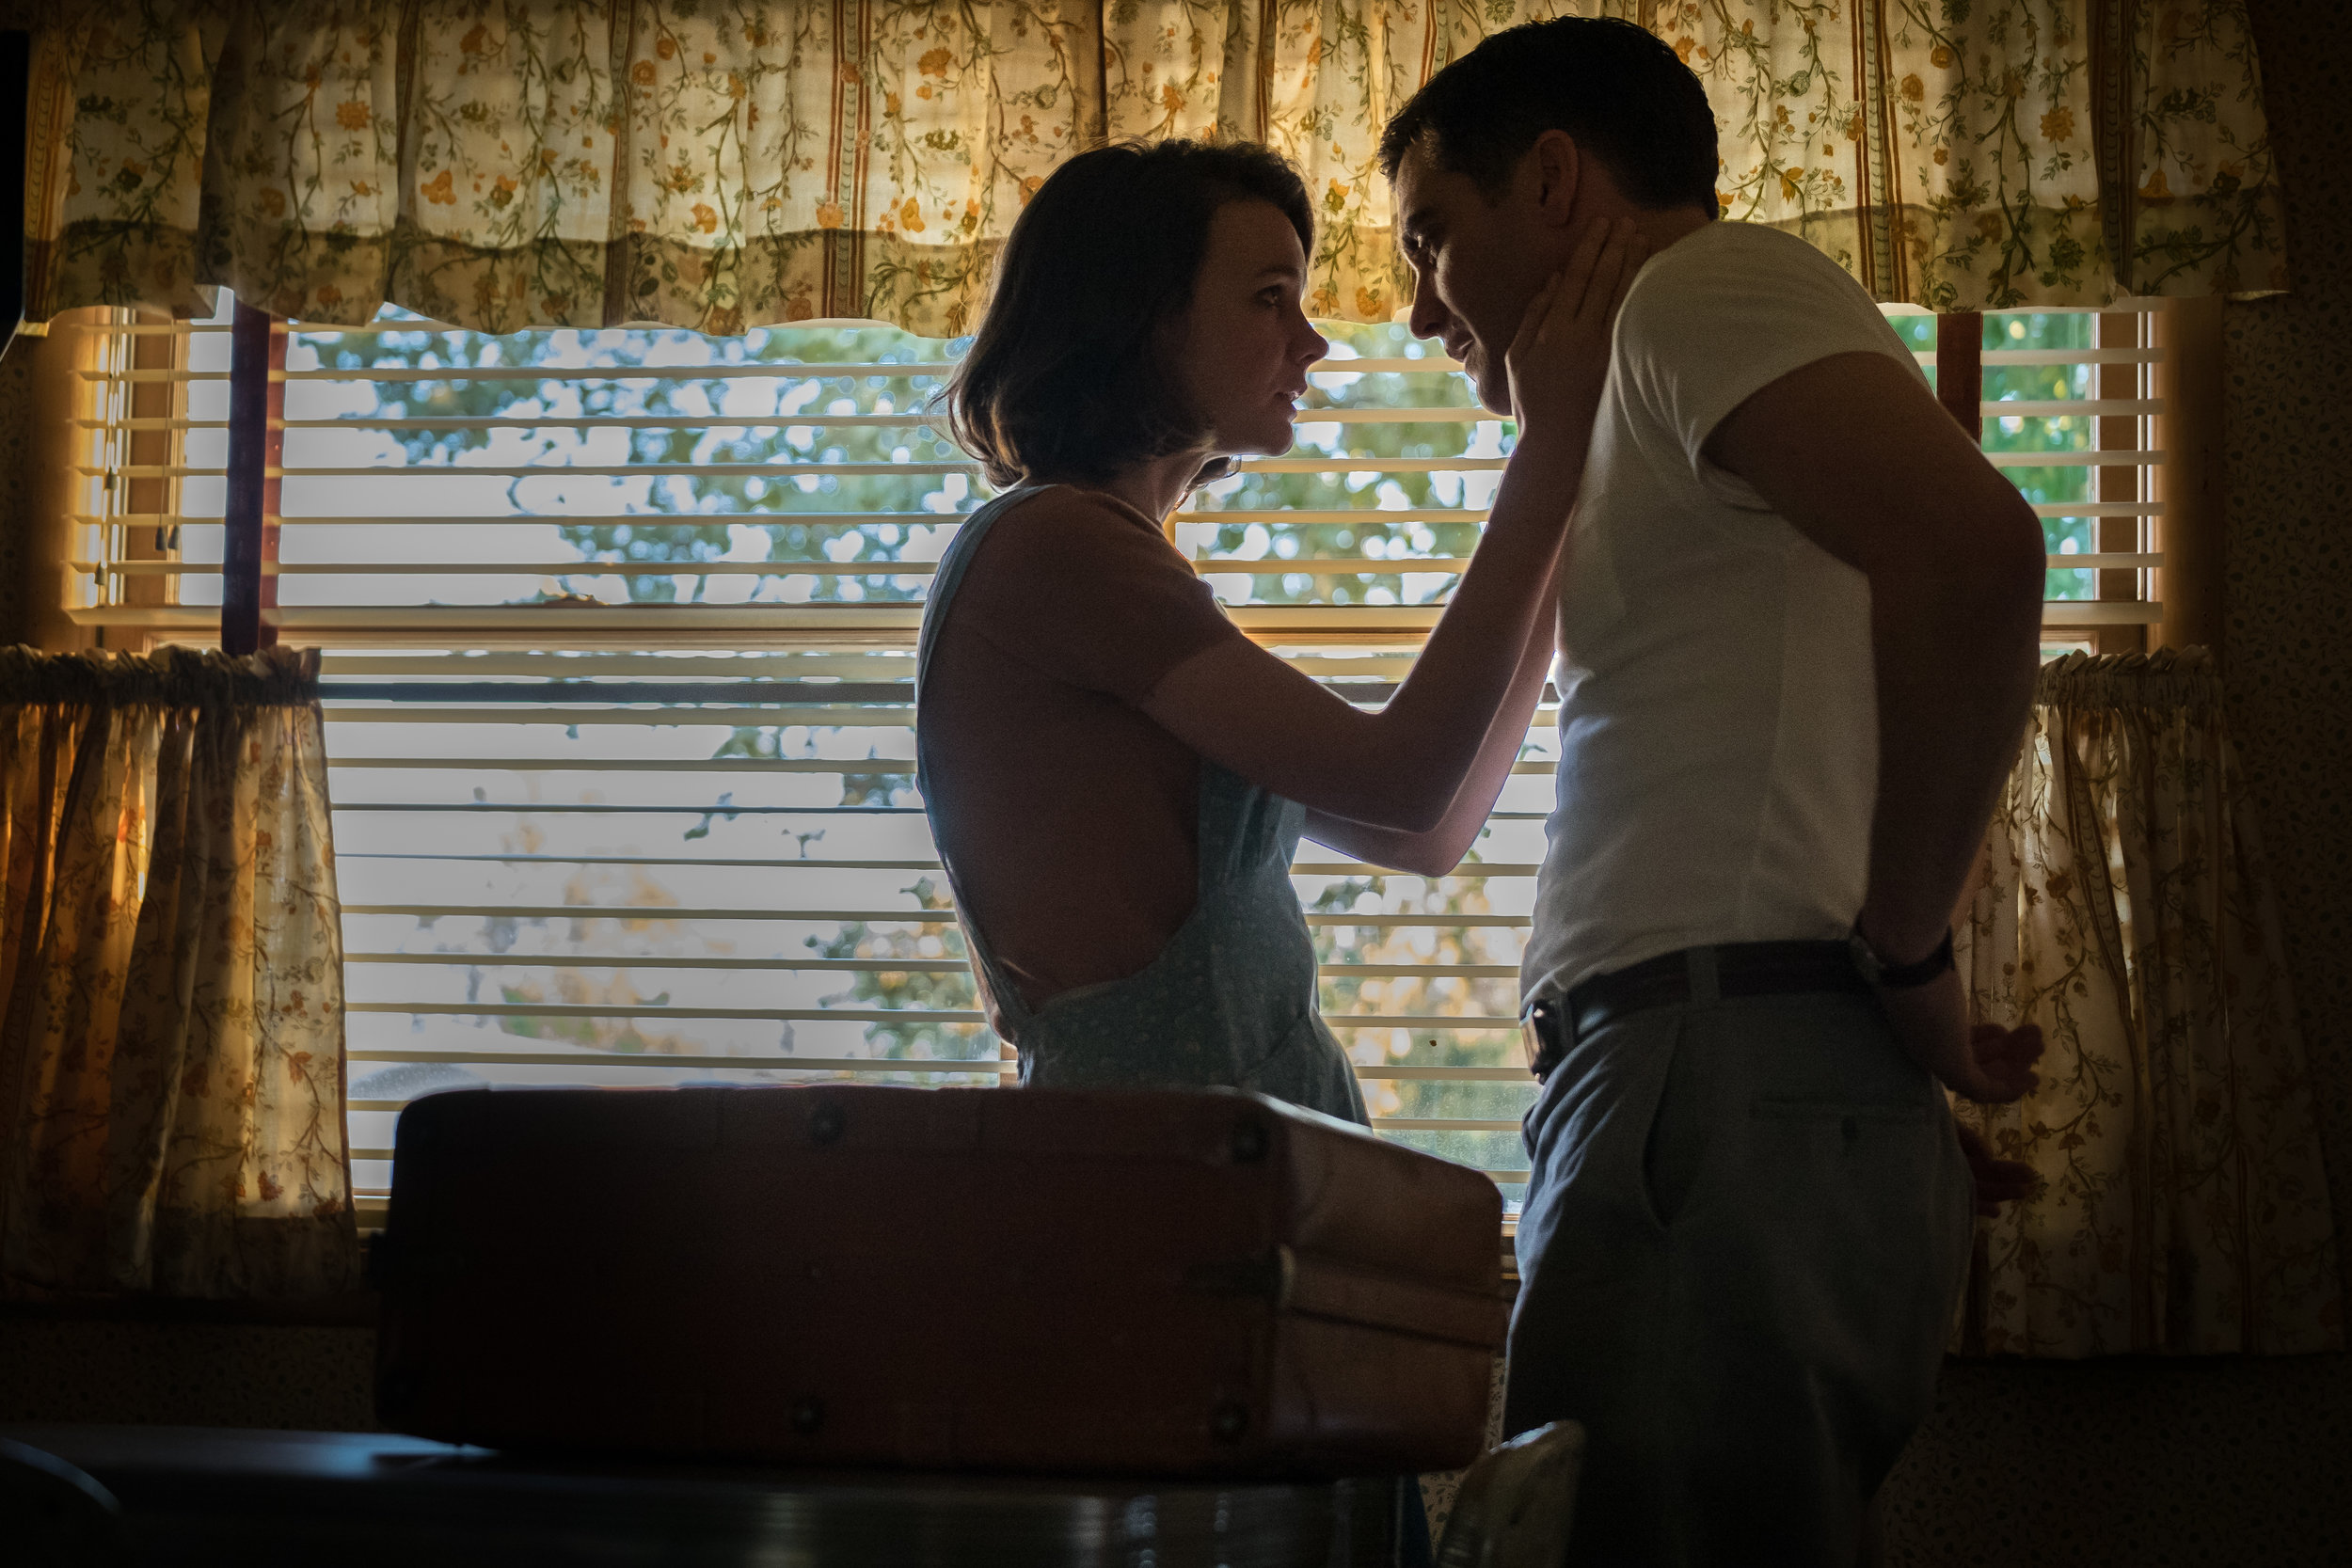 """Jeanette (Carey Mulligan, left) and Jerry (Jake Gyllenhaal), a married couple in 1960s Montana, have a confrontation in a moment from """"Wildlife,"""" director Paul Dano's adaptation of the Richard Ford novel. (Photo courtesy IFC Films)"""